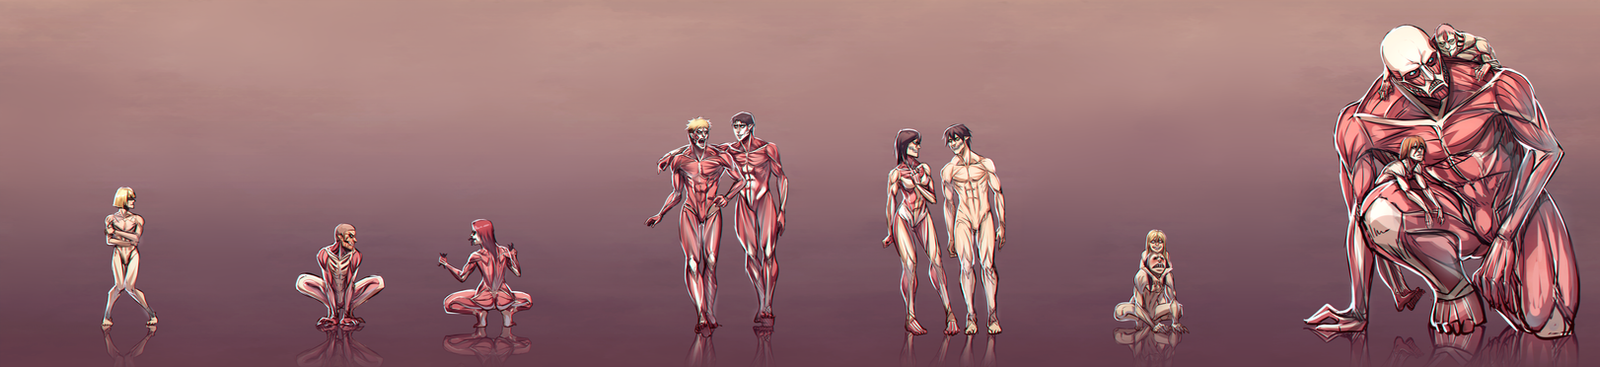 Attack on Titan AU by moni158